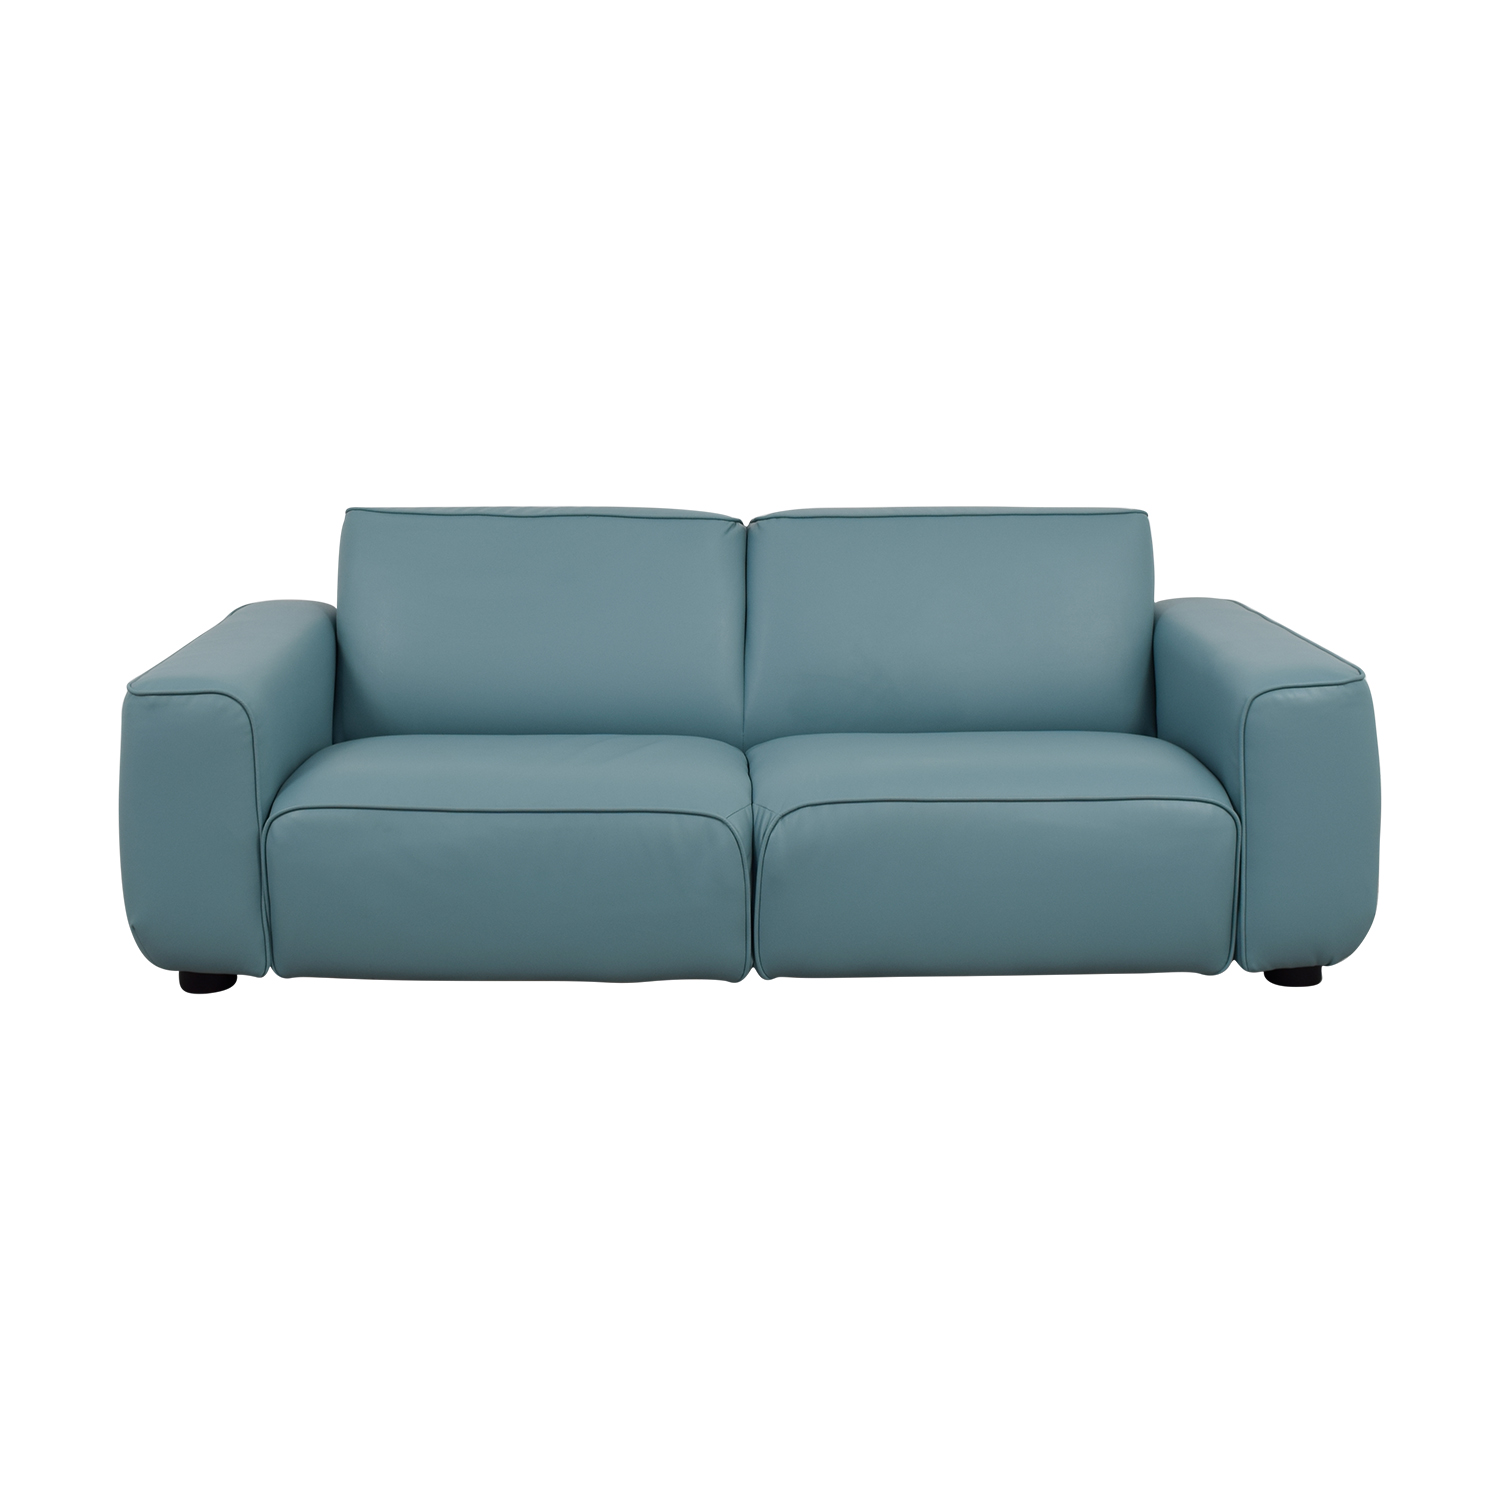 Ikea Coated Baby Blue Loveseat For